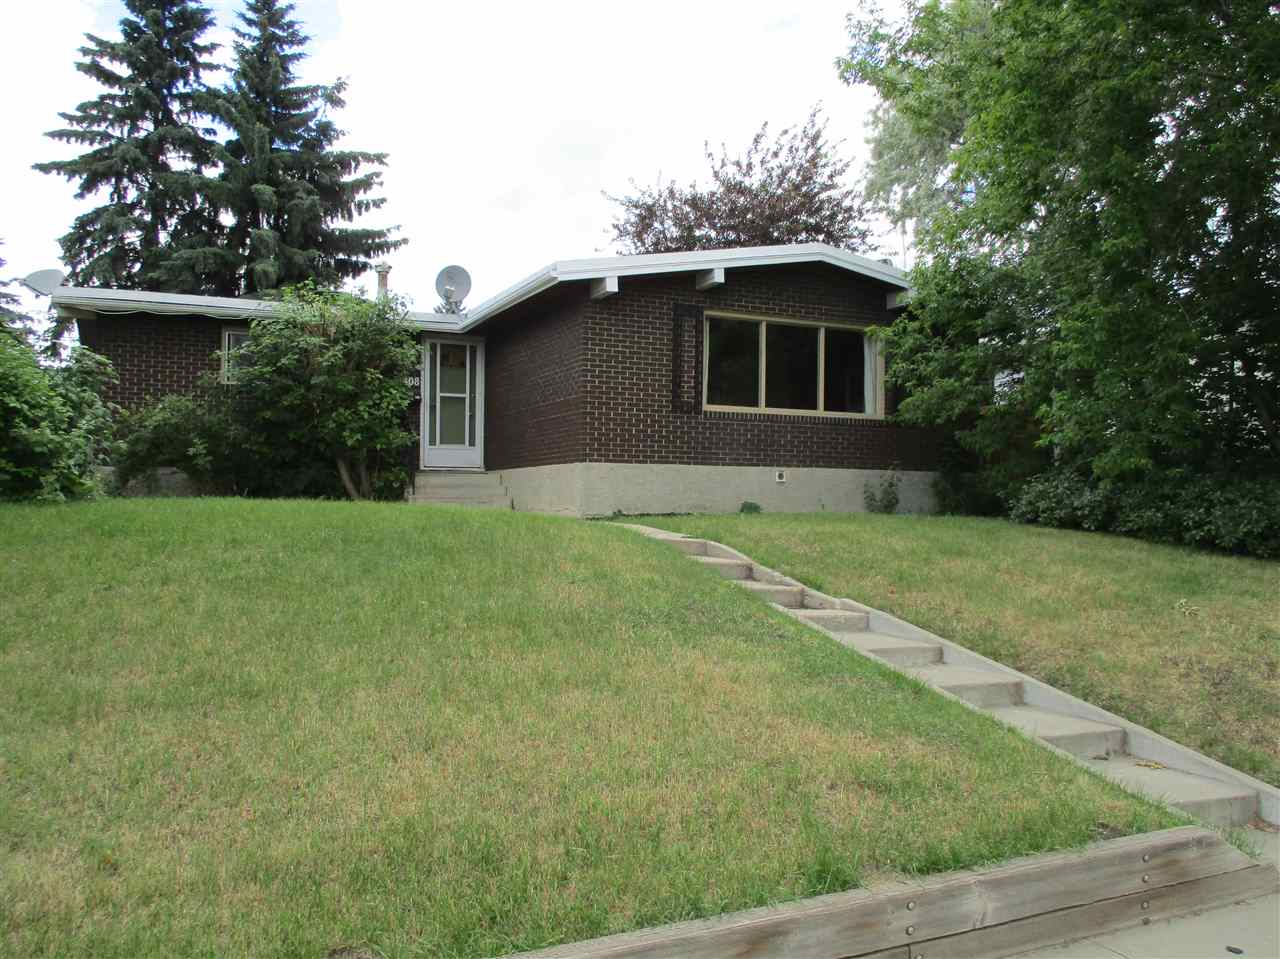 Main Photo: 5408 139 Avenue NW in Edmonton: Zone 02 House for sale : MLS(r) # E4071724